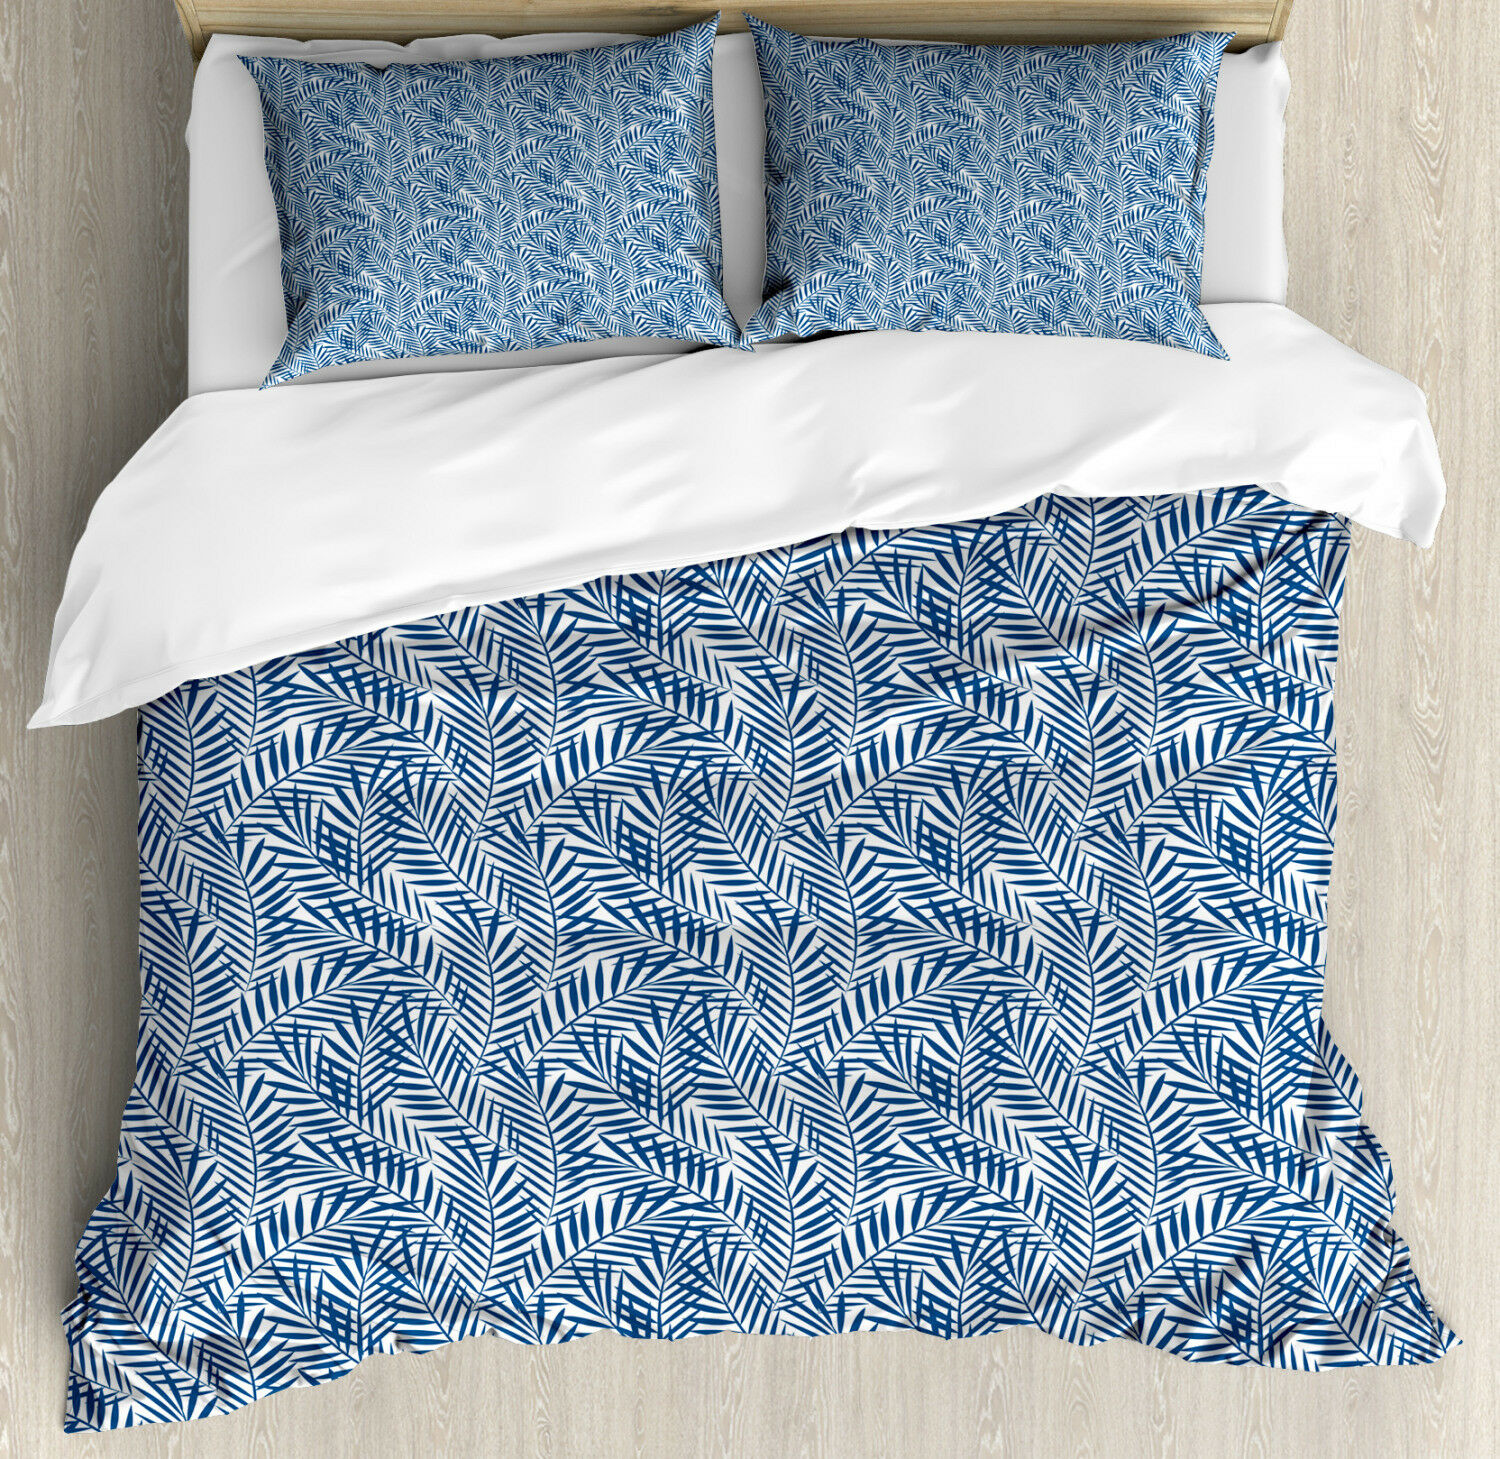 Navy blu Duvet Cover Set with Pillow Shams Abstract Exotic Nature Print